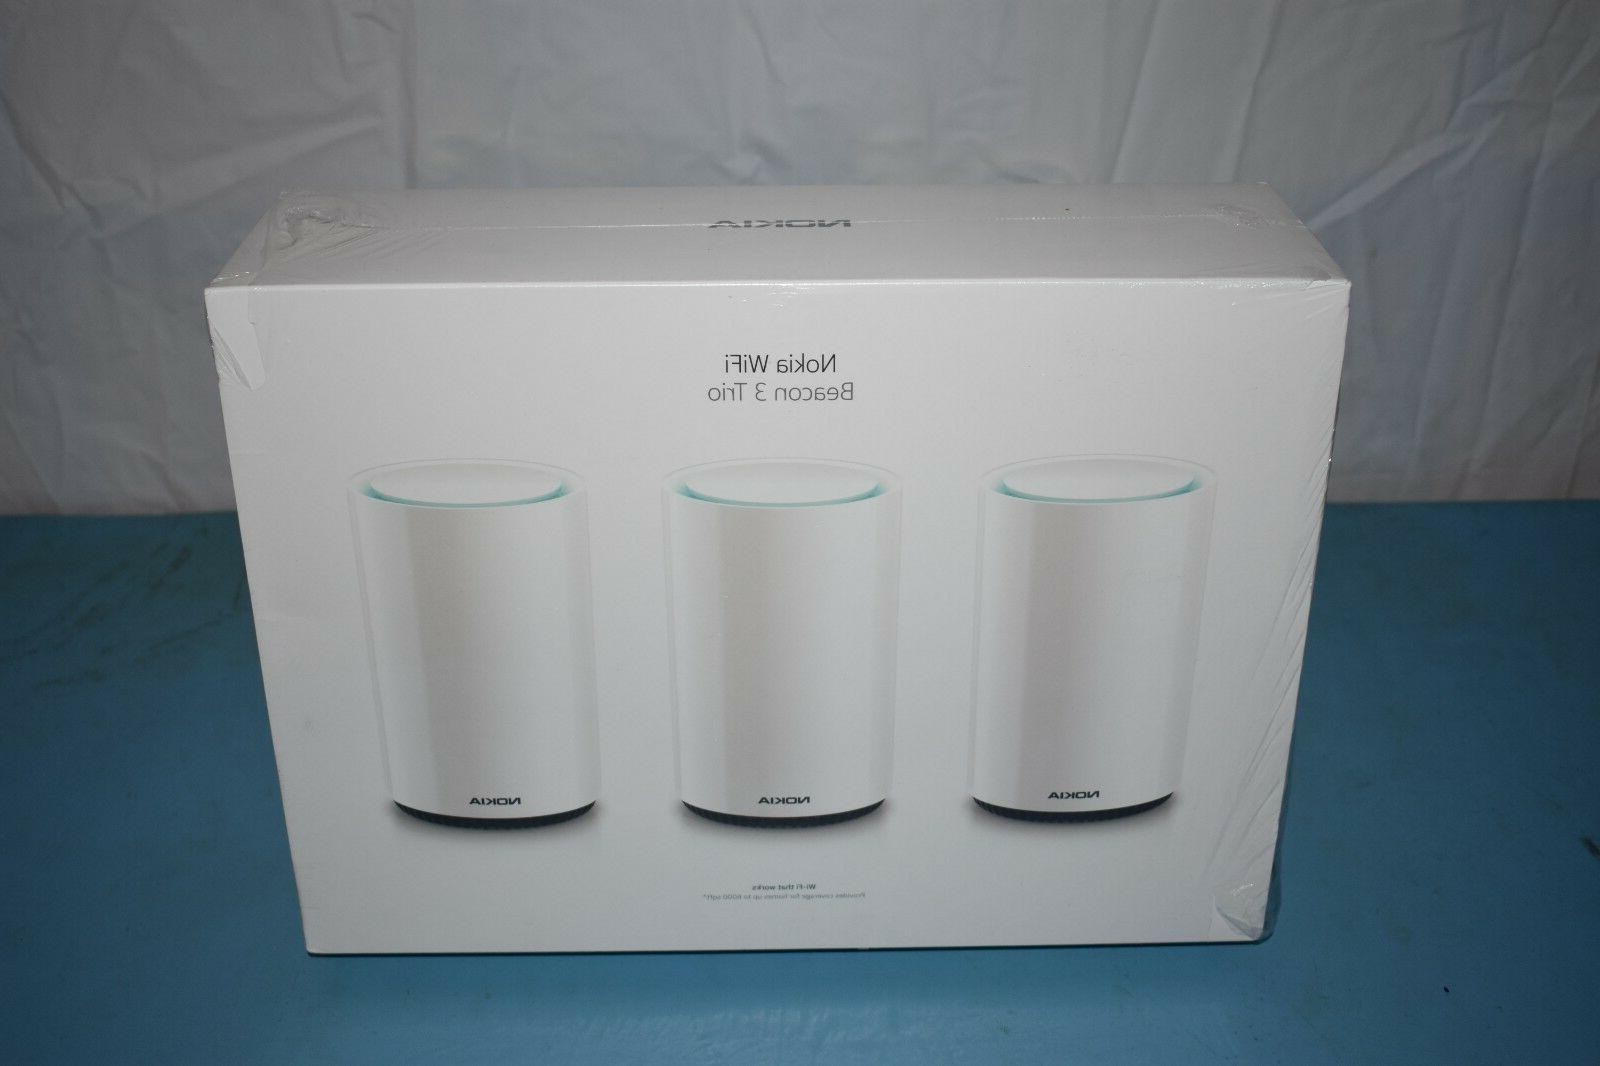 wifi beacon 3 mesh router system intelligent